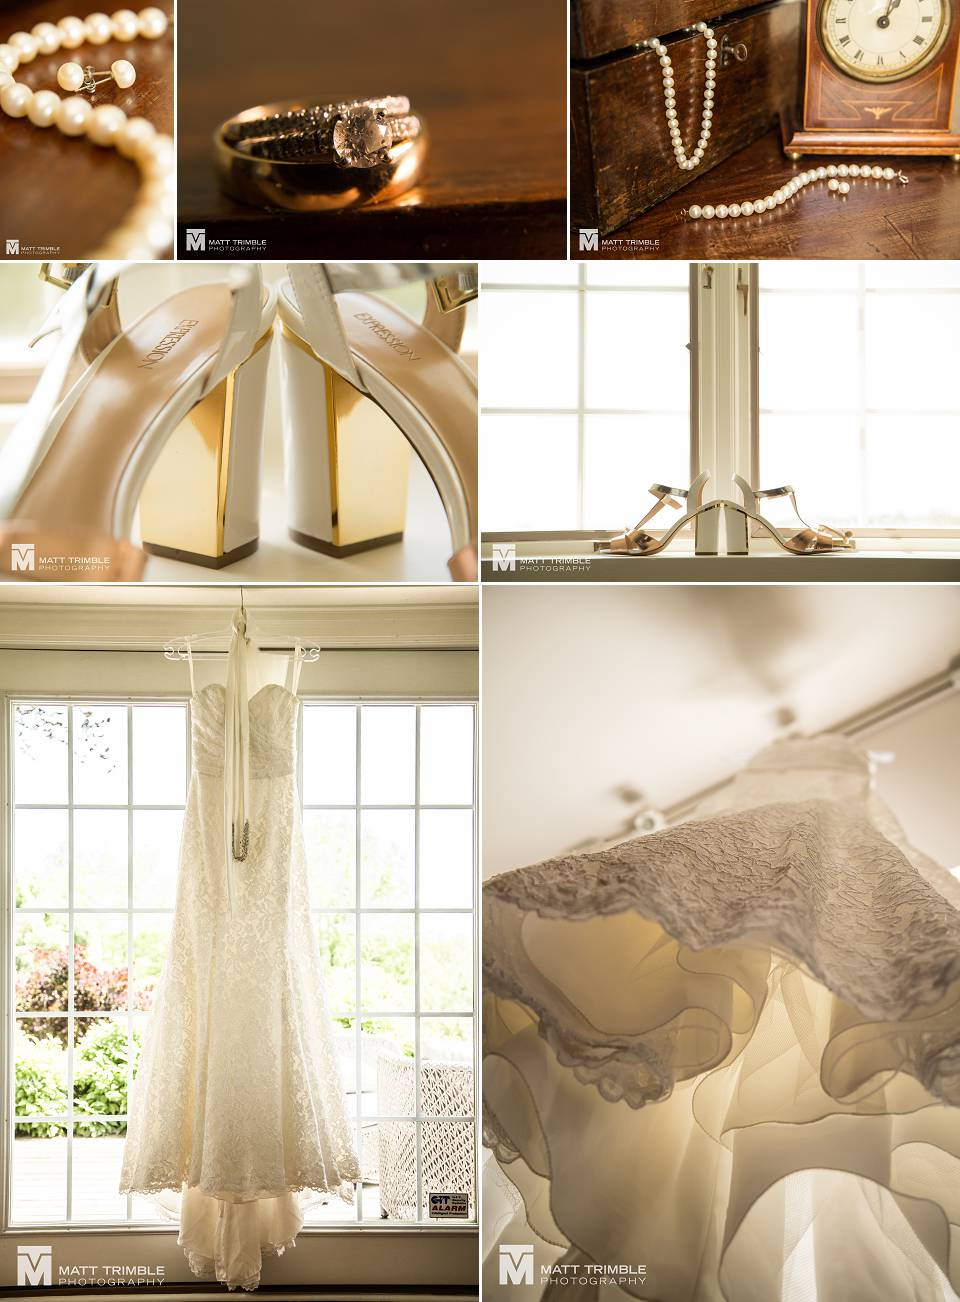 cotswolds estates bride details photos